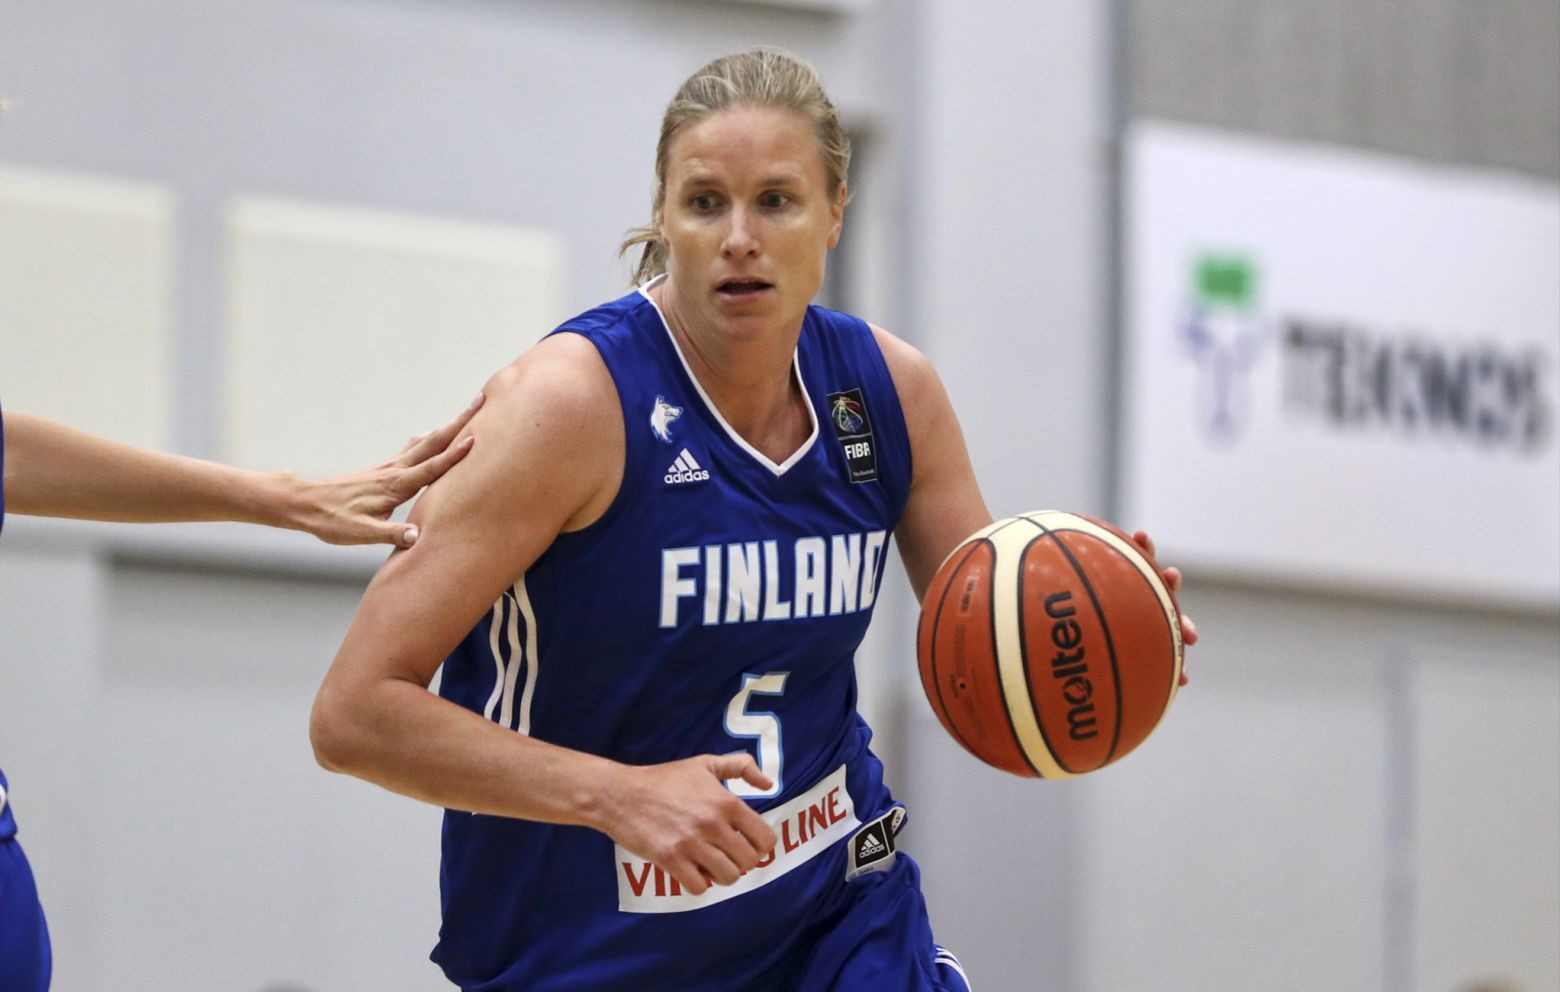 TARU TUUKKANEN has signed in Spain with Mann Filter Zaragoza